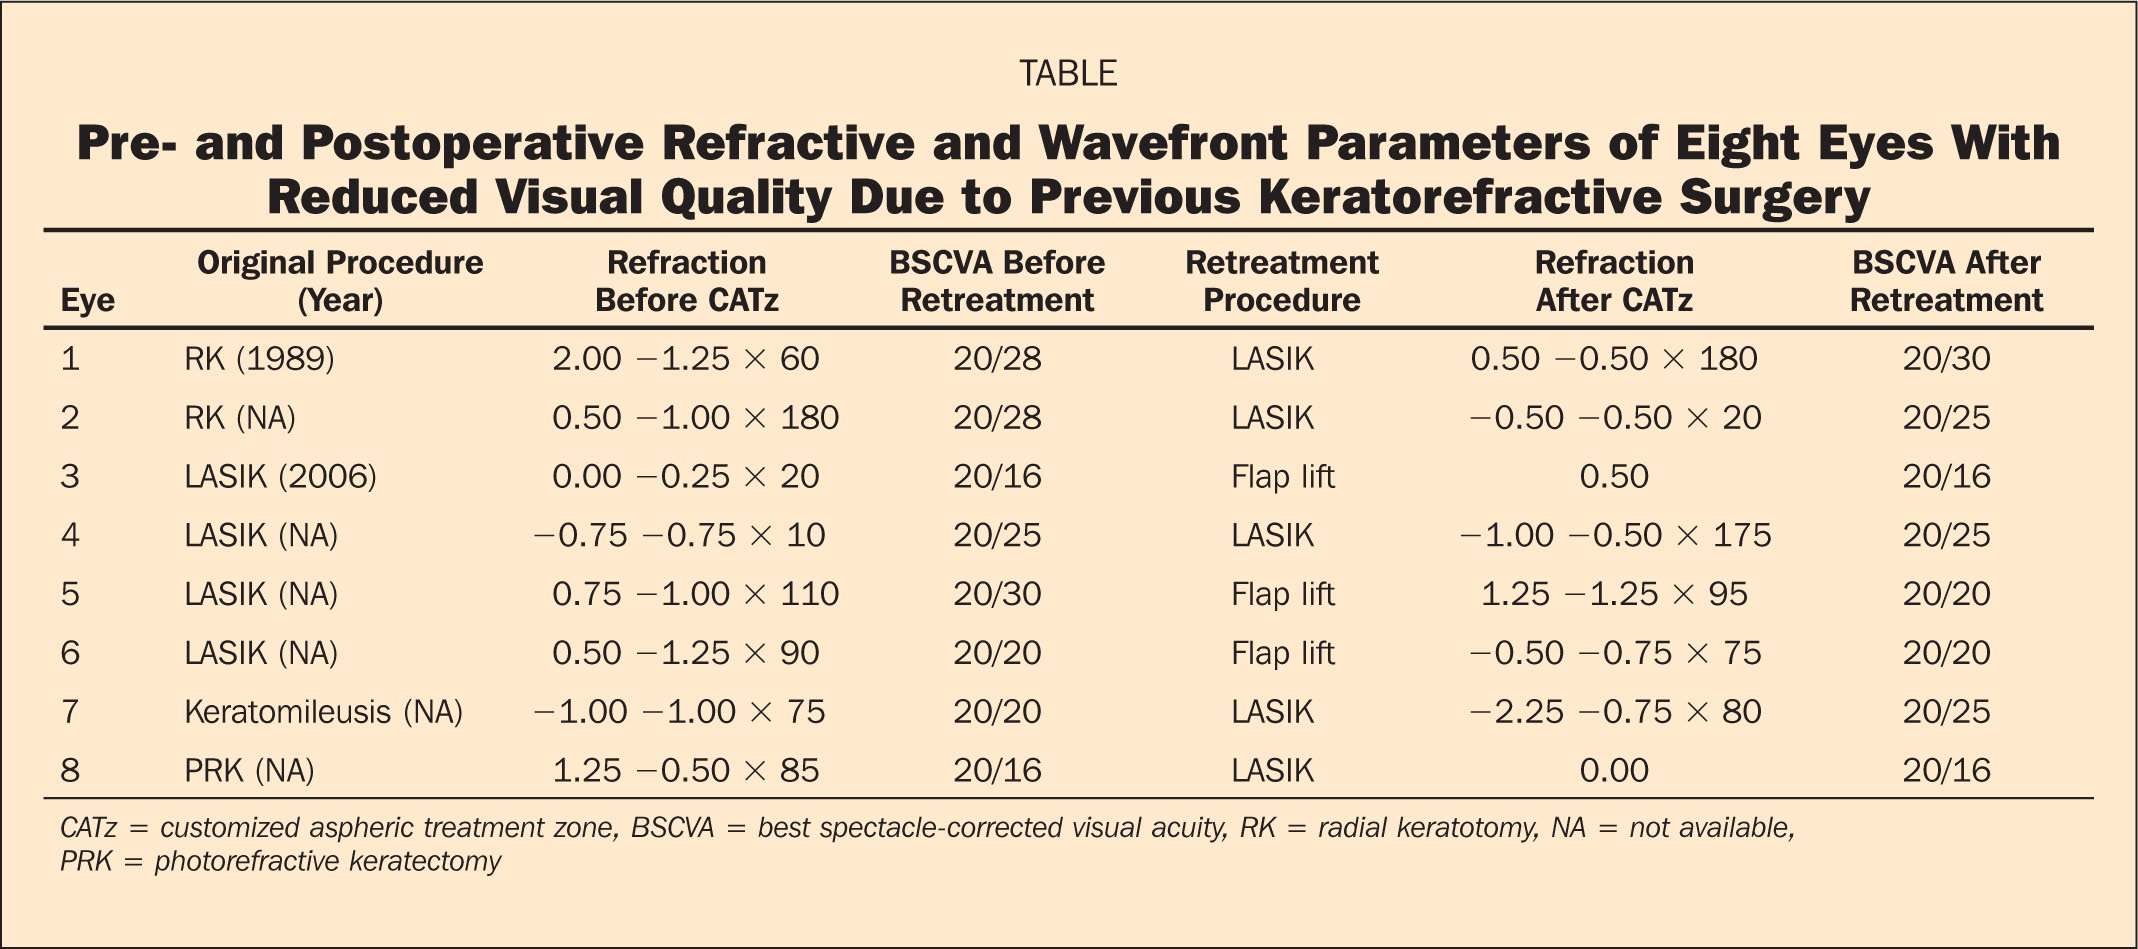 Pre- and Postoperative Refractive and Wavefront Parameters of Eight Eyes with Reduced Visual Quality Due to Previous Keratorefractive Surgery